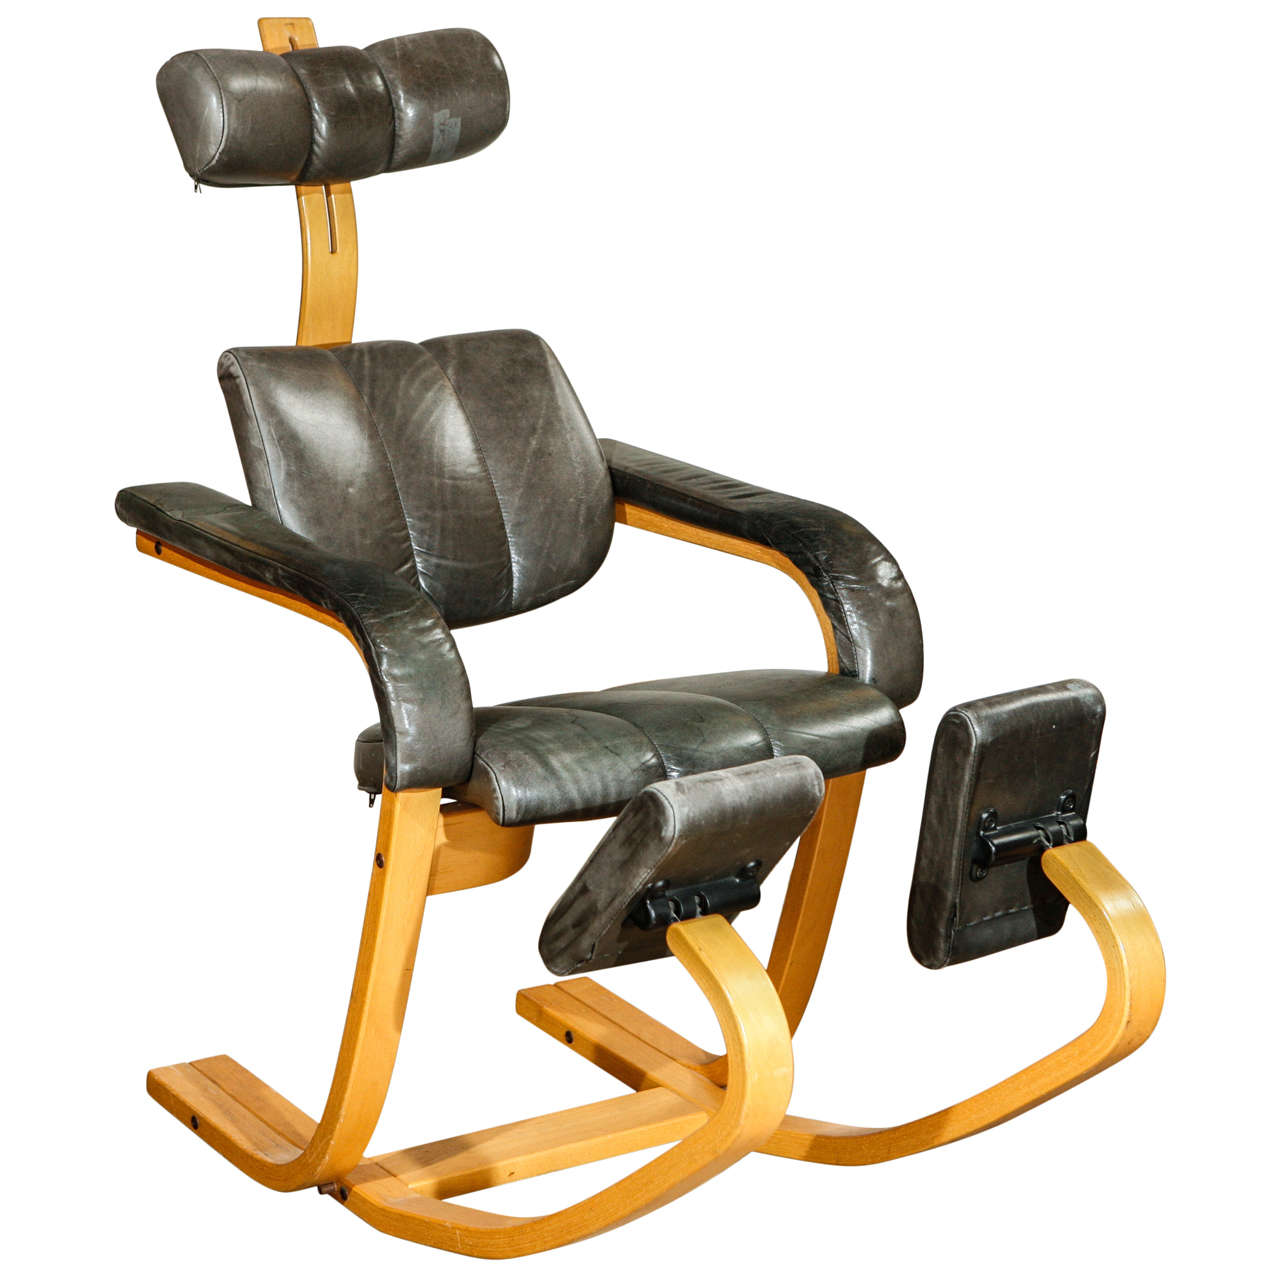 Raider Swivel Rocker Recliner p 29578 additionally Indoor Chair Cushions additionally Enquiry as well Item item 2879436 together with McGinnis Swivel Rocker Recliner p 60524. on rocking chair seat pads